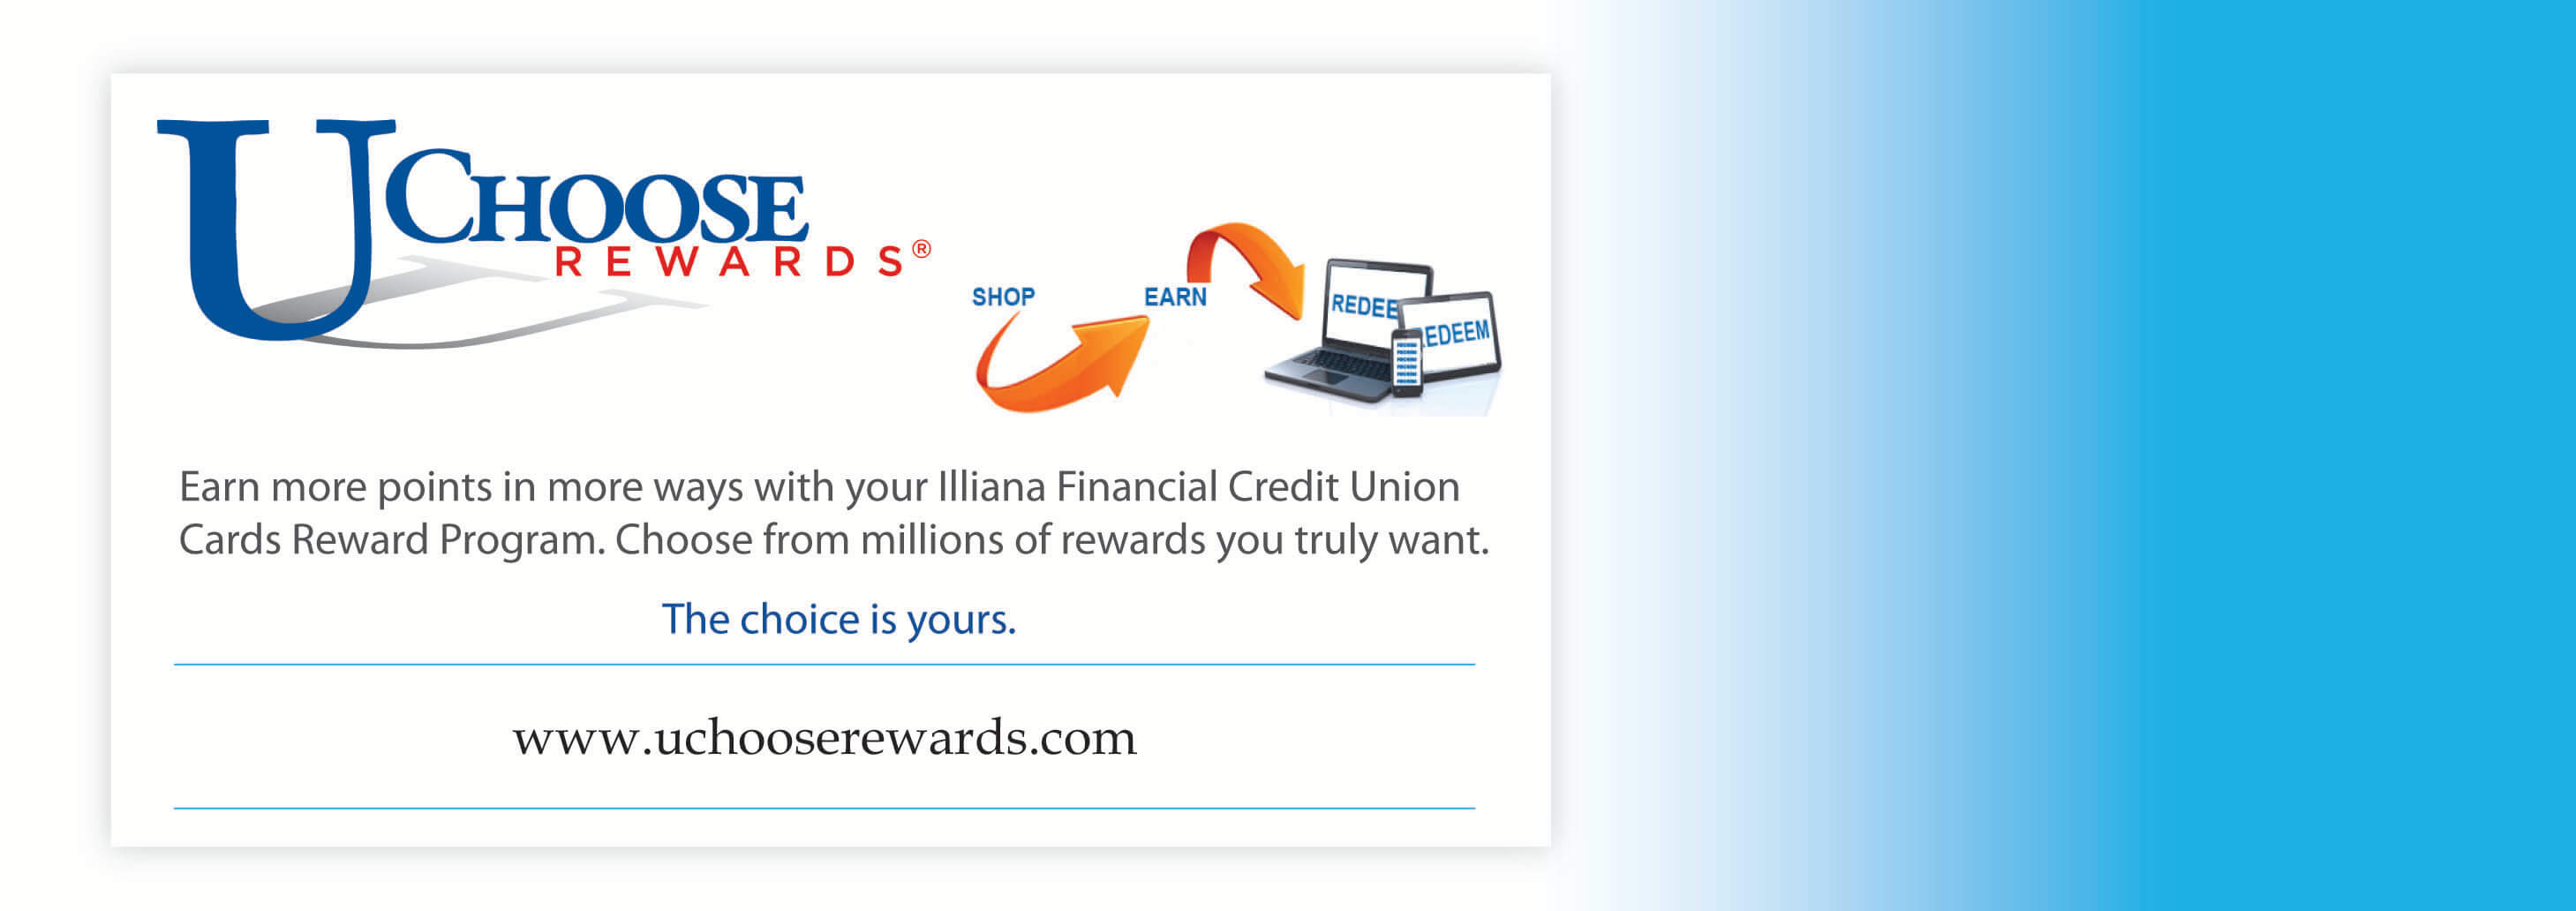 Earn points using Illiana Financial Credit Reward Program